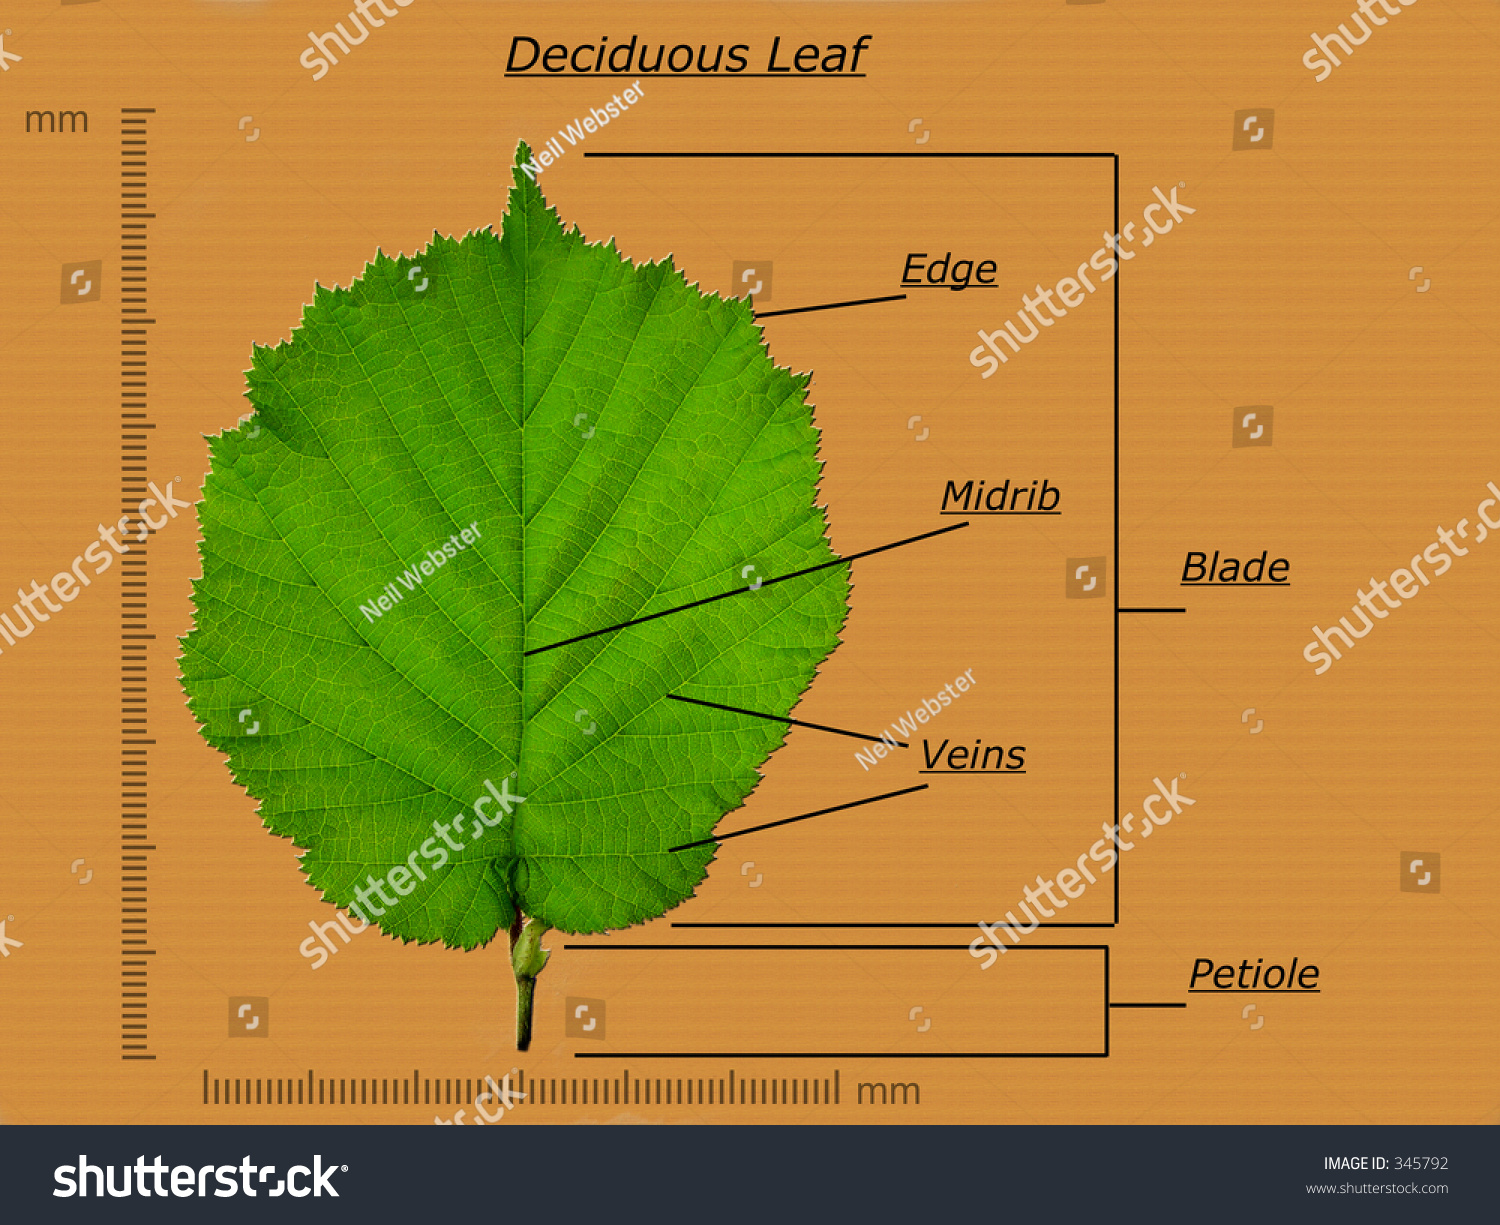 Leaf diagram stock photo 345792 shutterstock leaf diagram pooptronica Choice Image